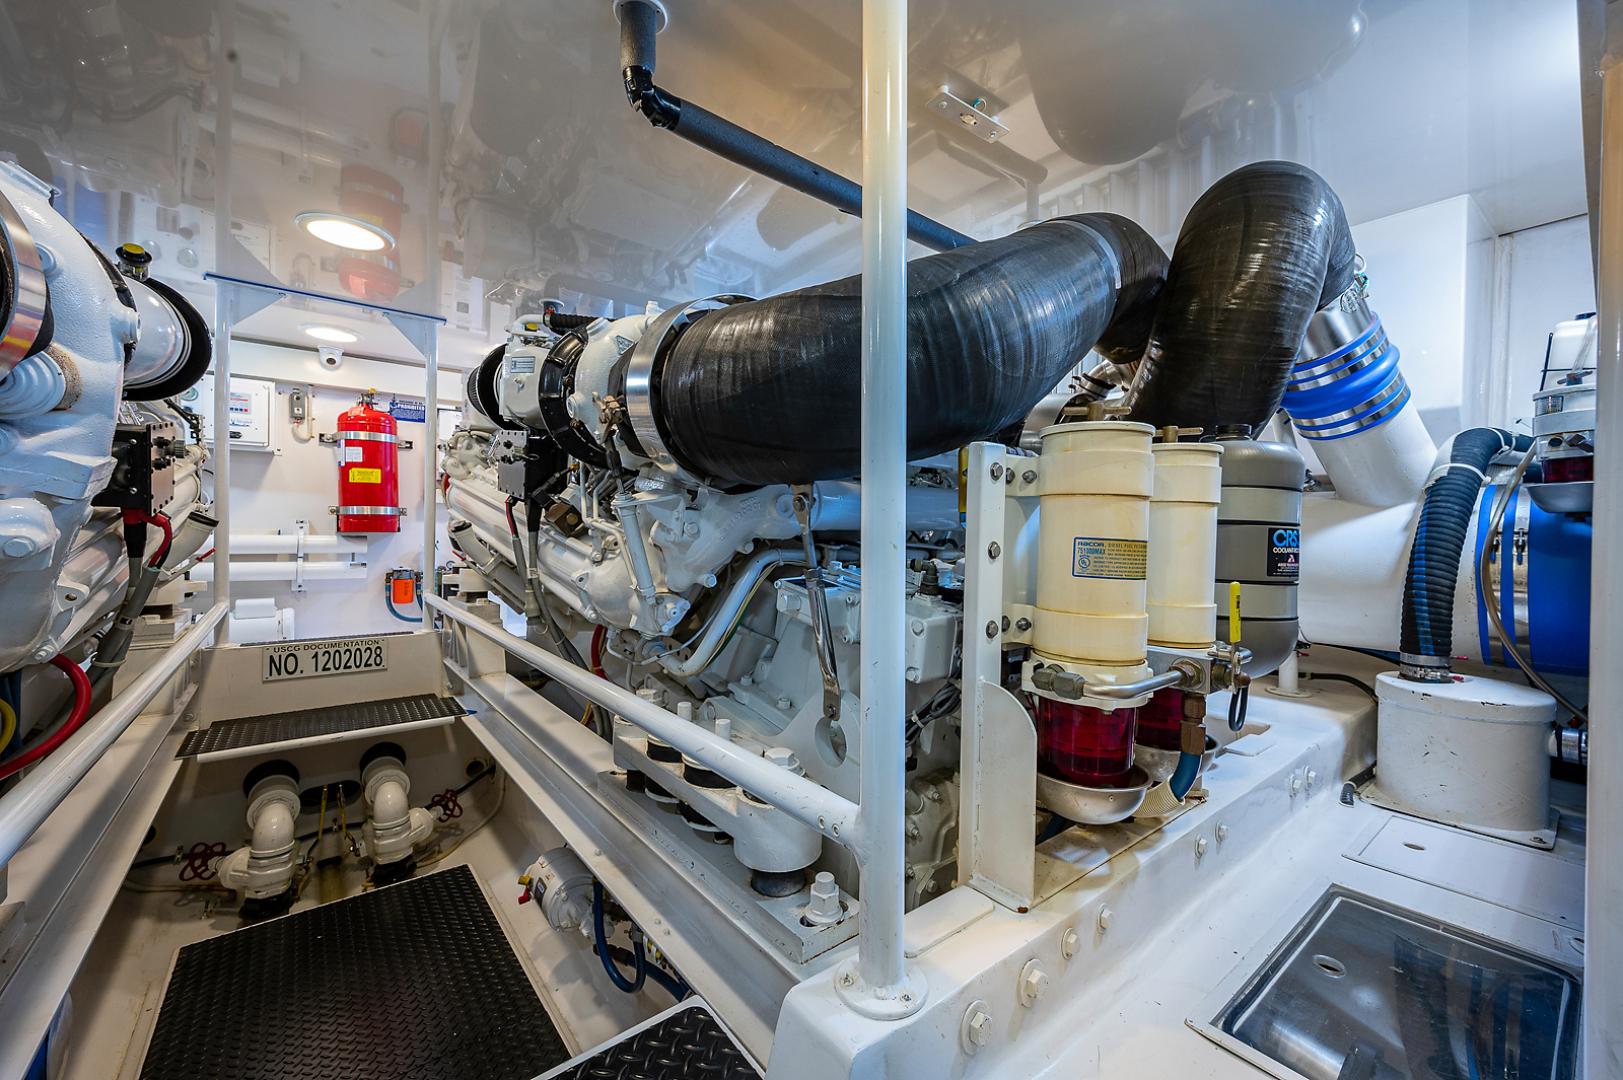 Viking-Convertible 2007-Scoped Out Lighthouse Point-Florida-United States-Engine Room-1552151 | Thumbnail